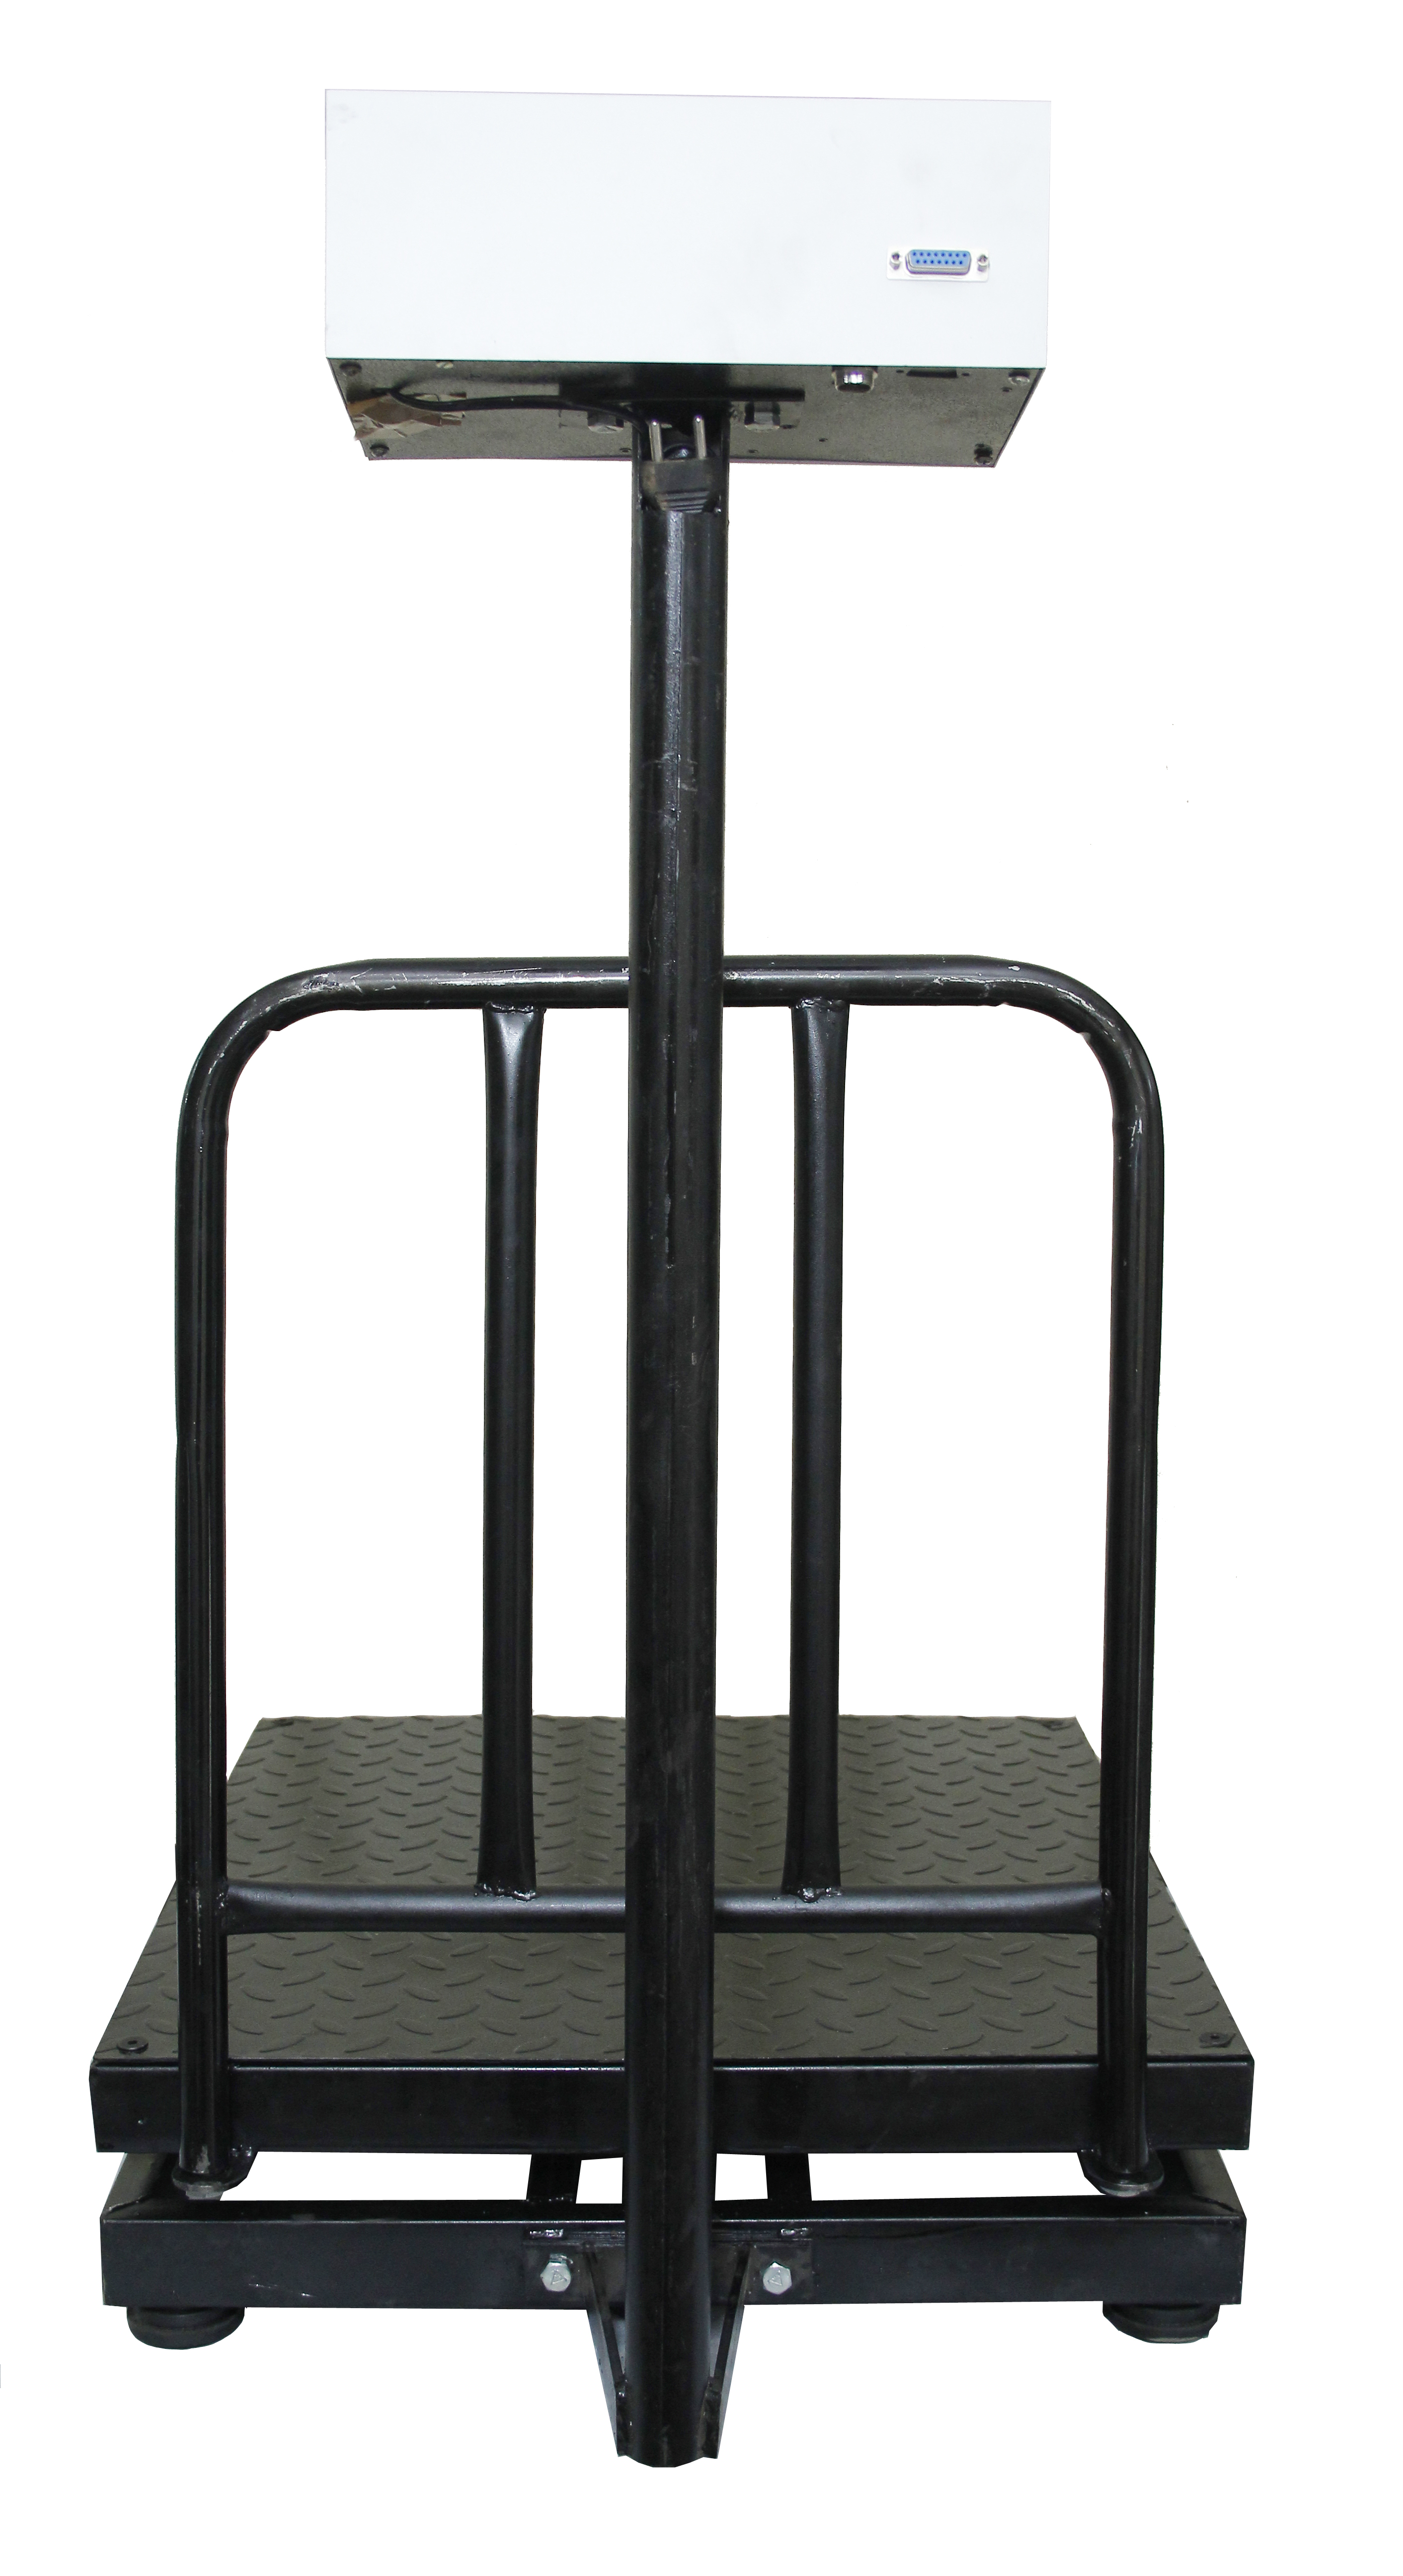 200 kg weighing scales